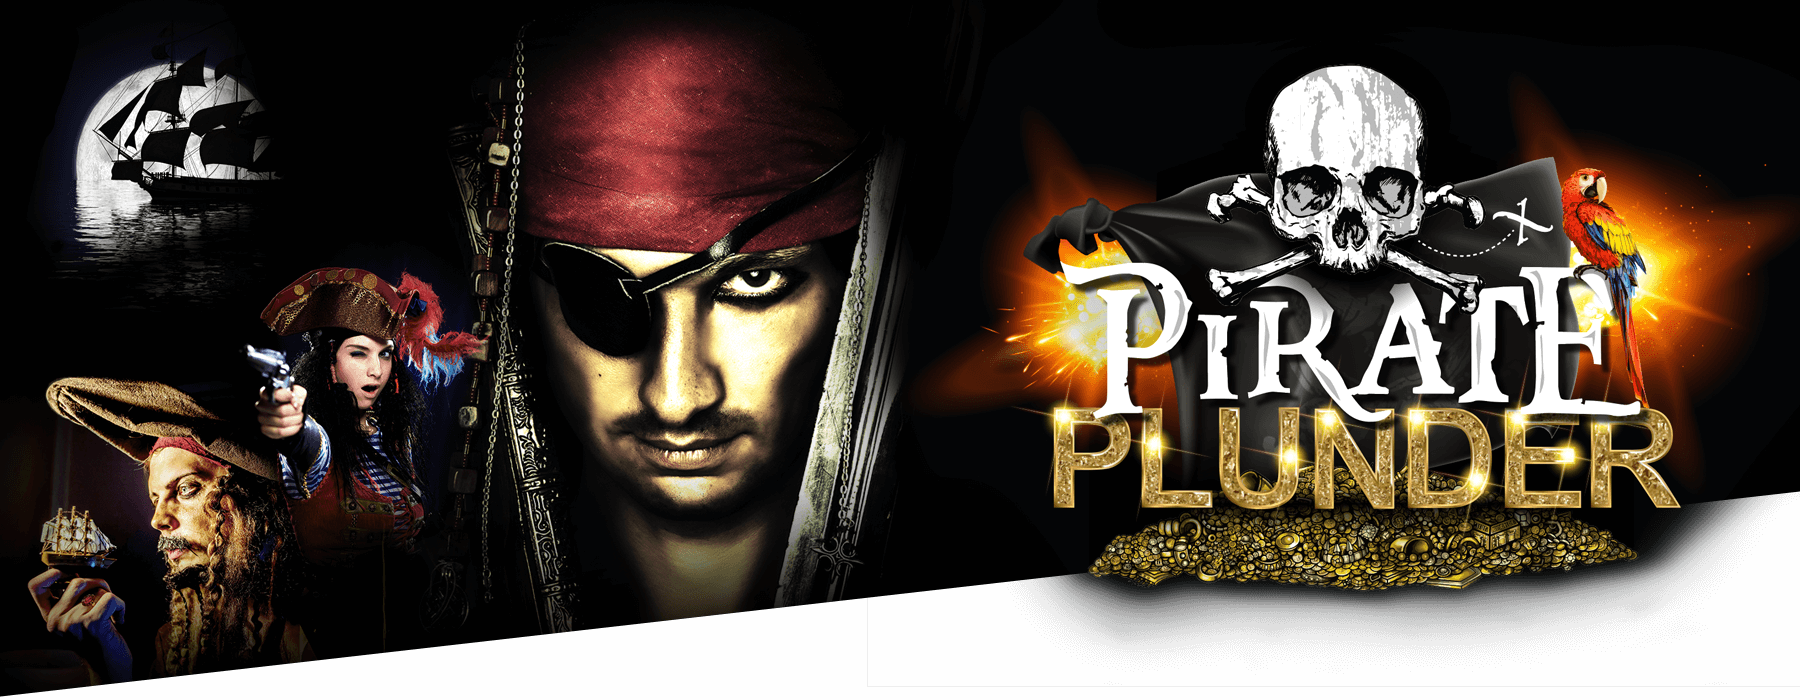 Pirate Plunder Southend